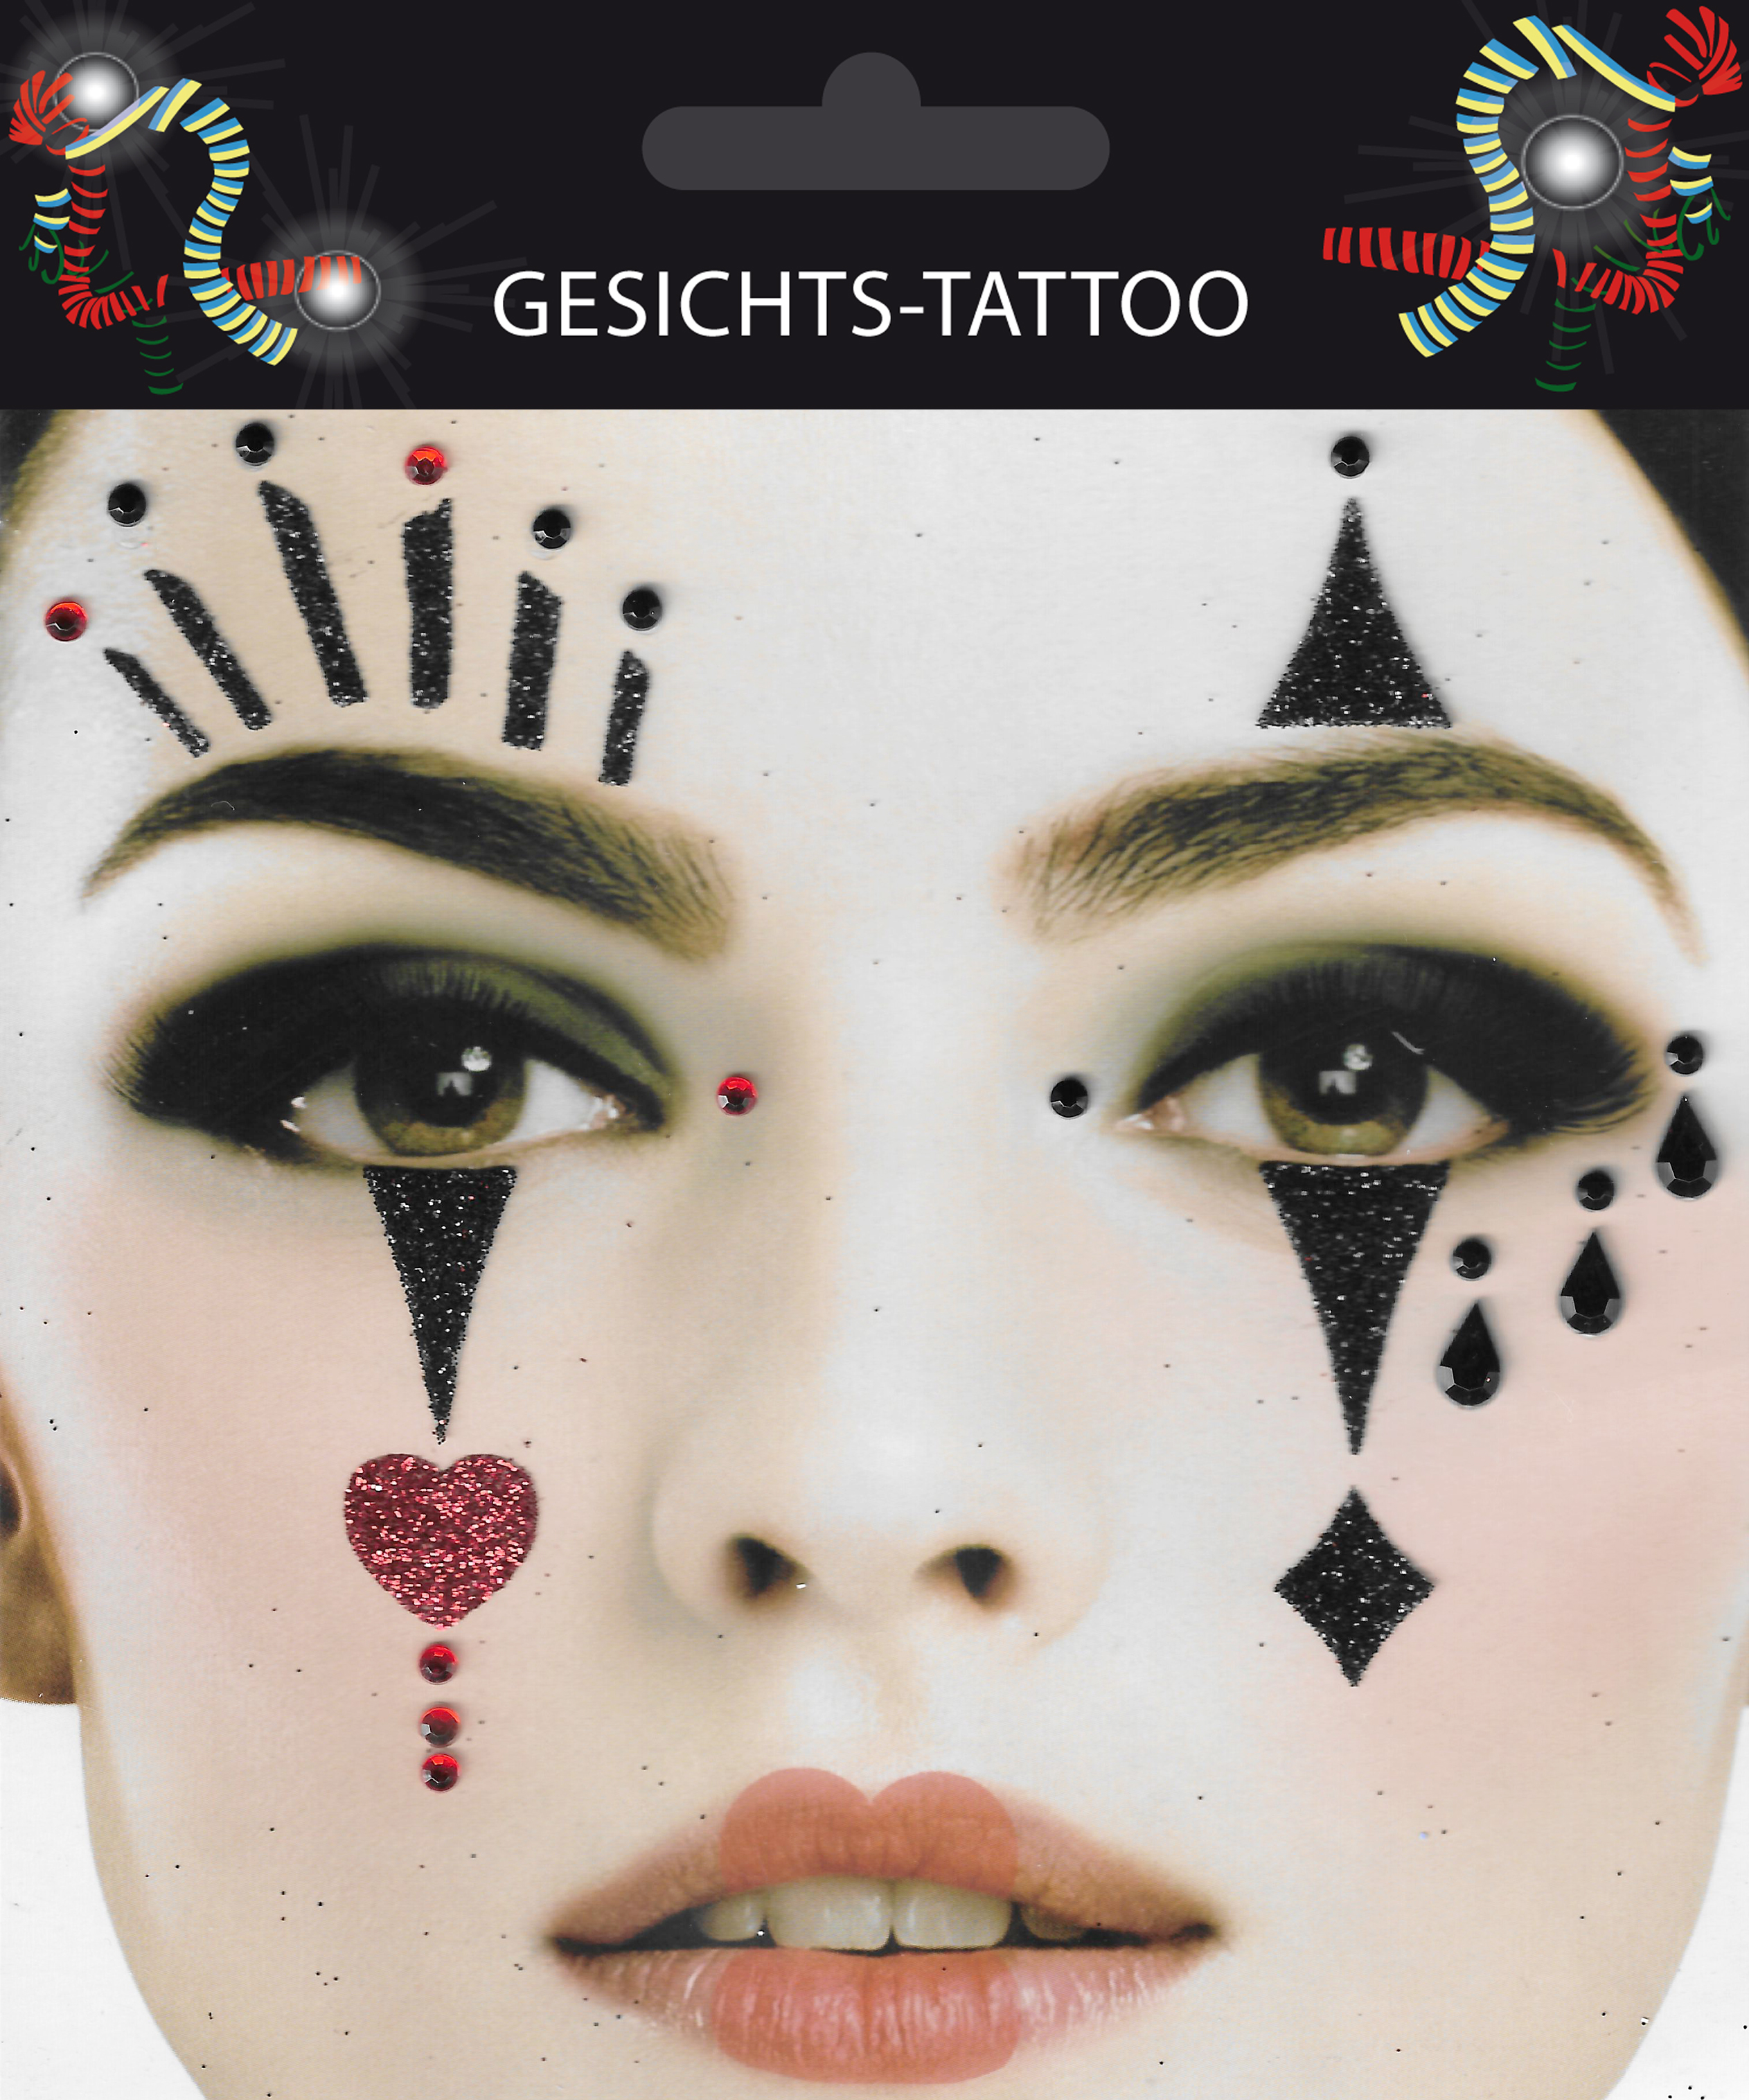 Gesichts-Tattoo Pantomime